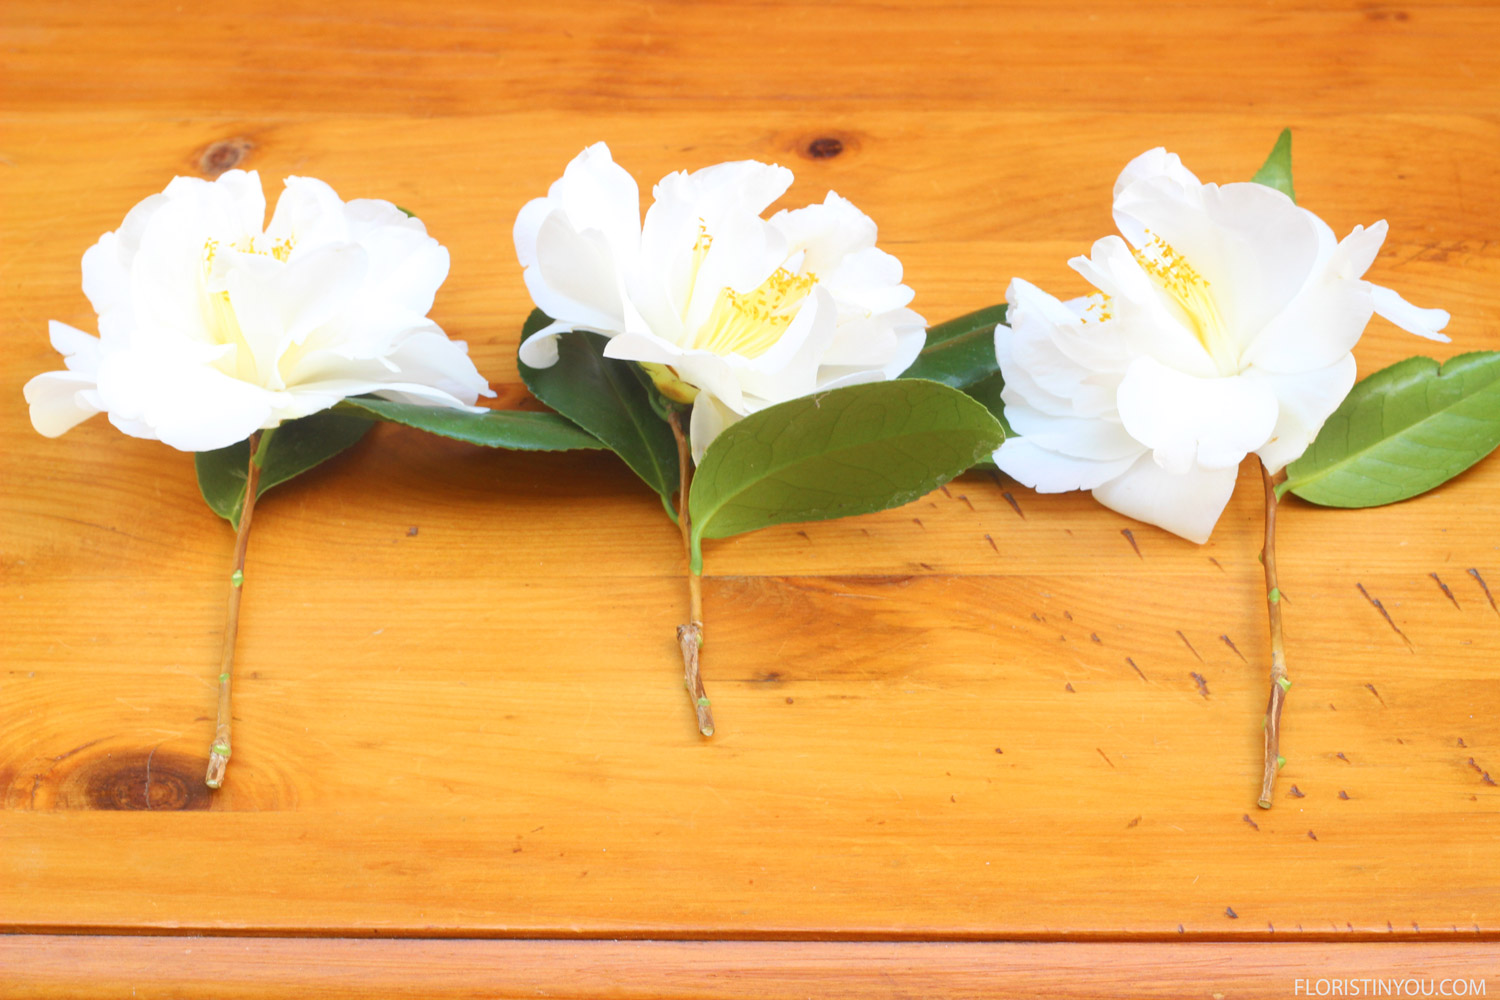 Cut 3 blooms or 6 for double sided. Cut stems long.